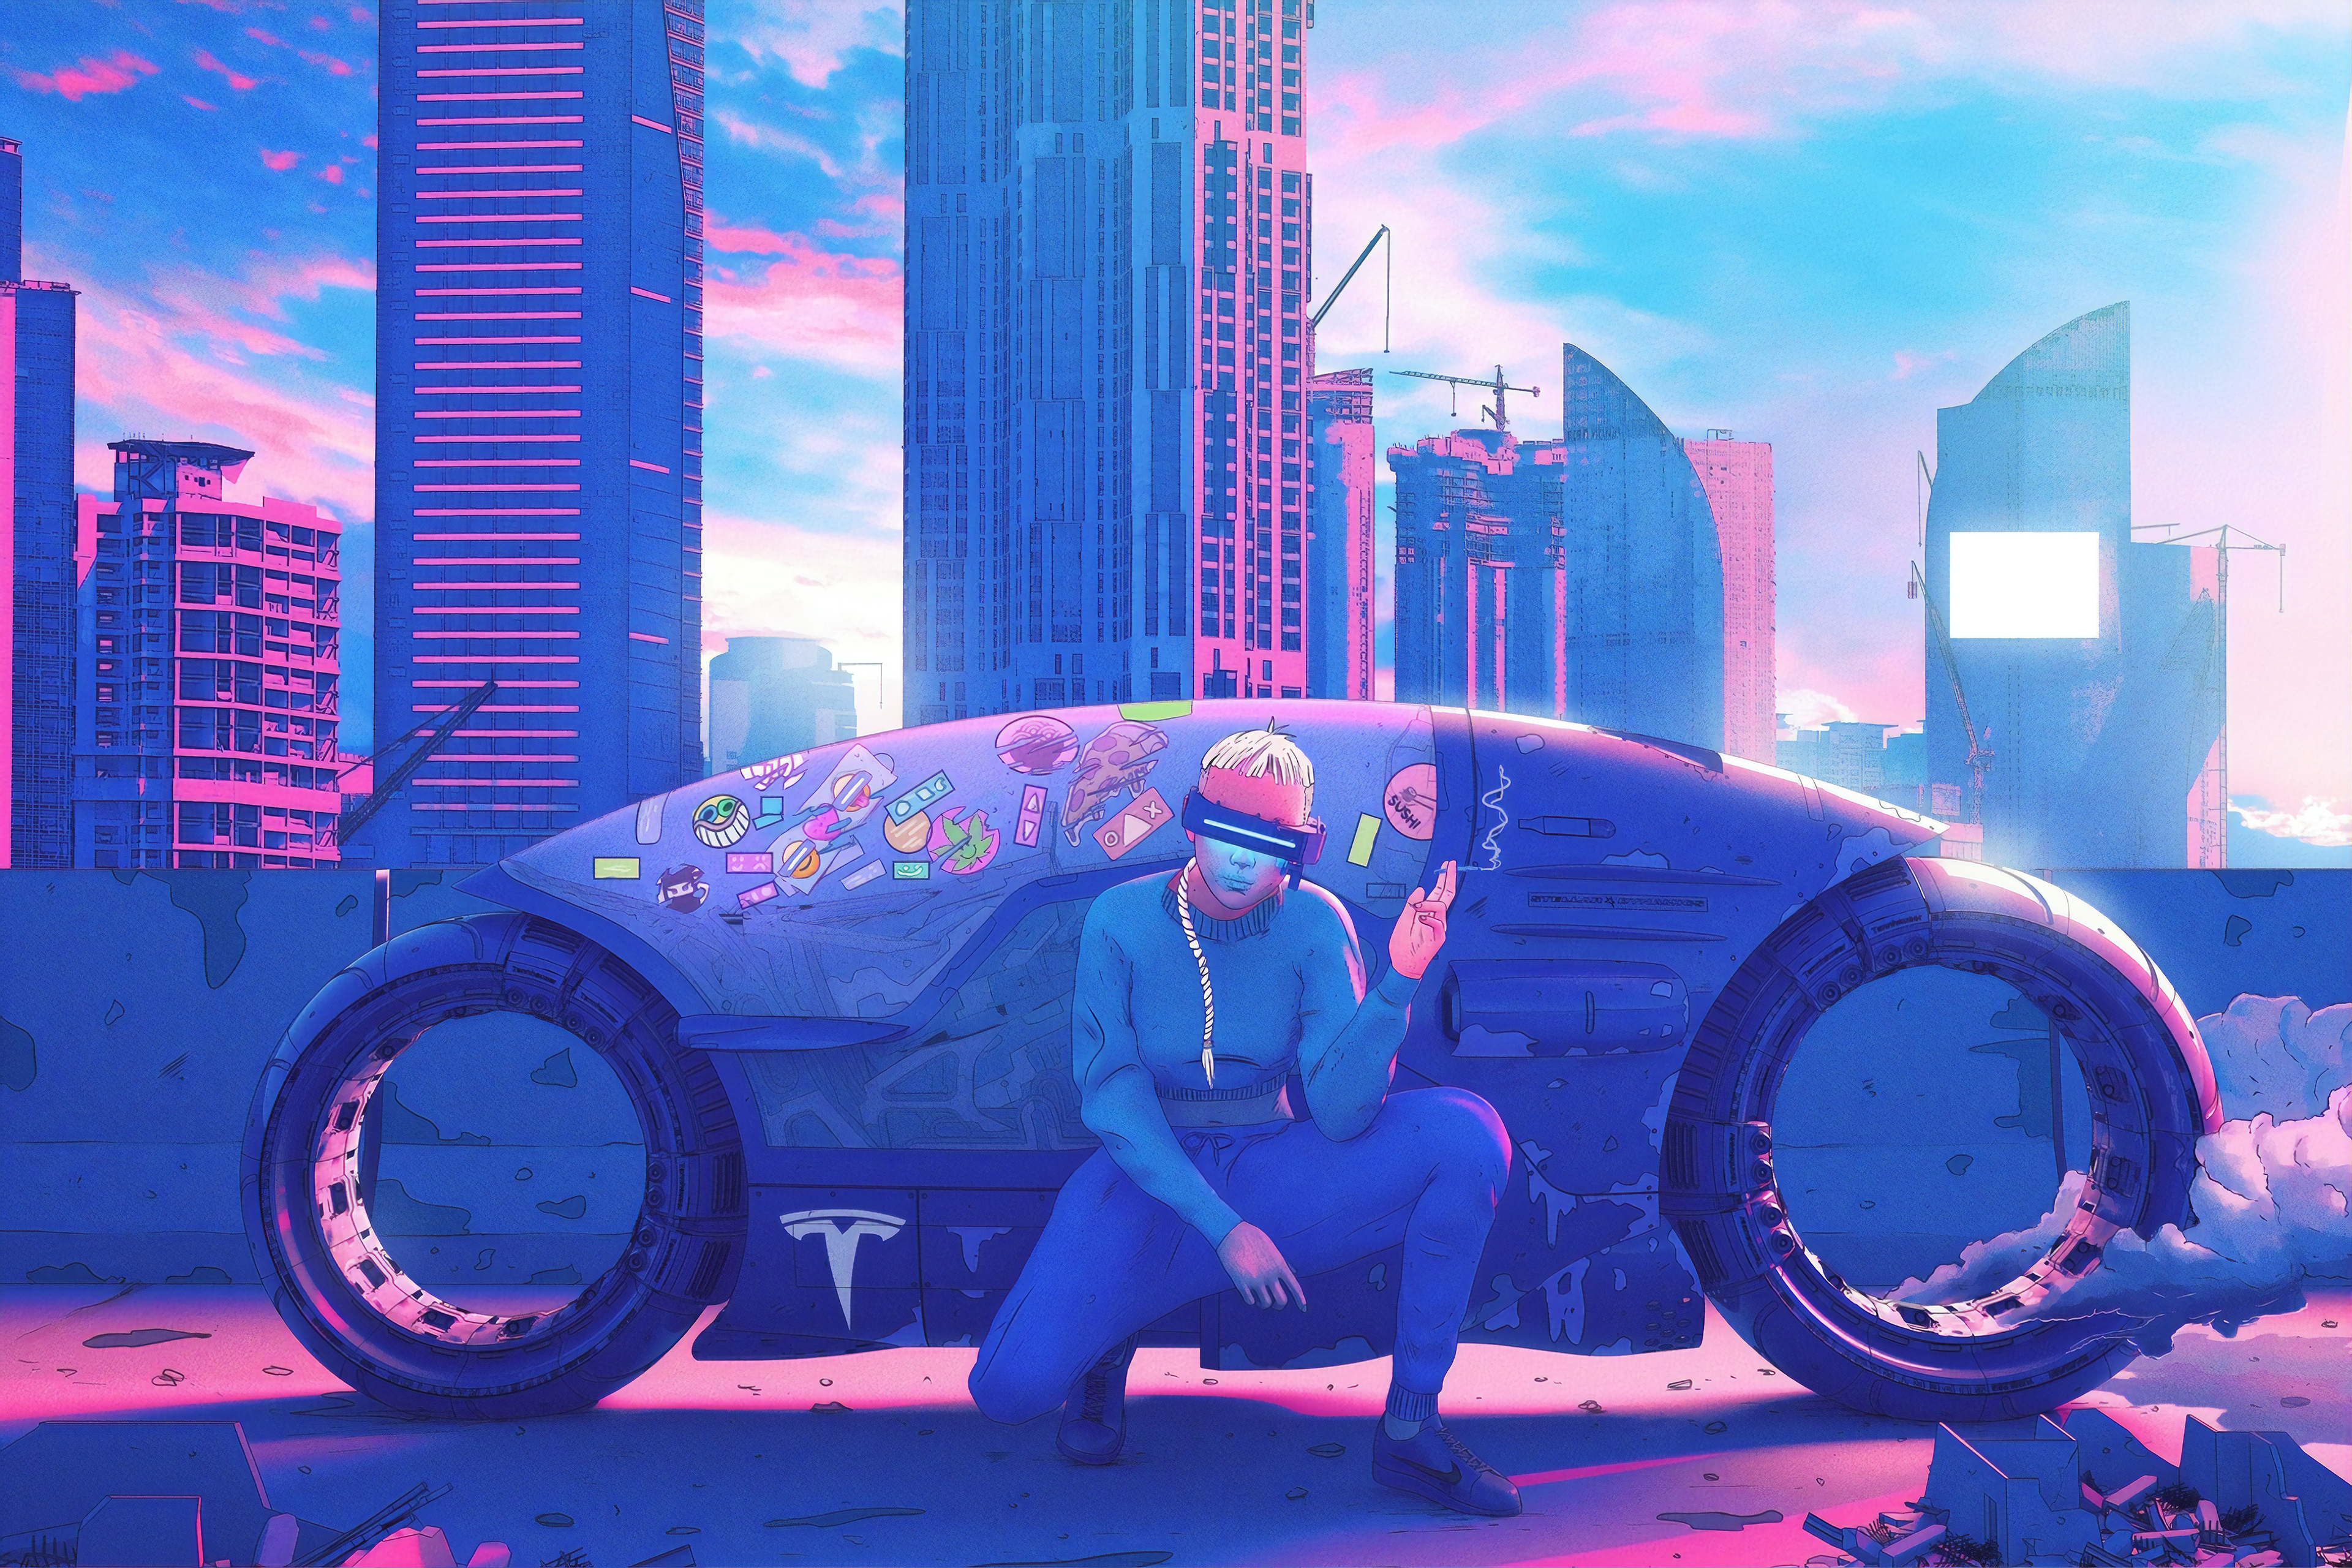 Cyberpunk Biker Rider 4k Hd Artist 4k Wallpapers Images Backgrounds Photos And Pictures